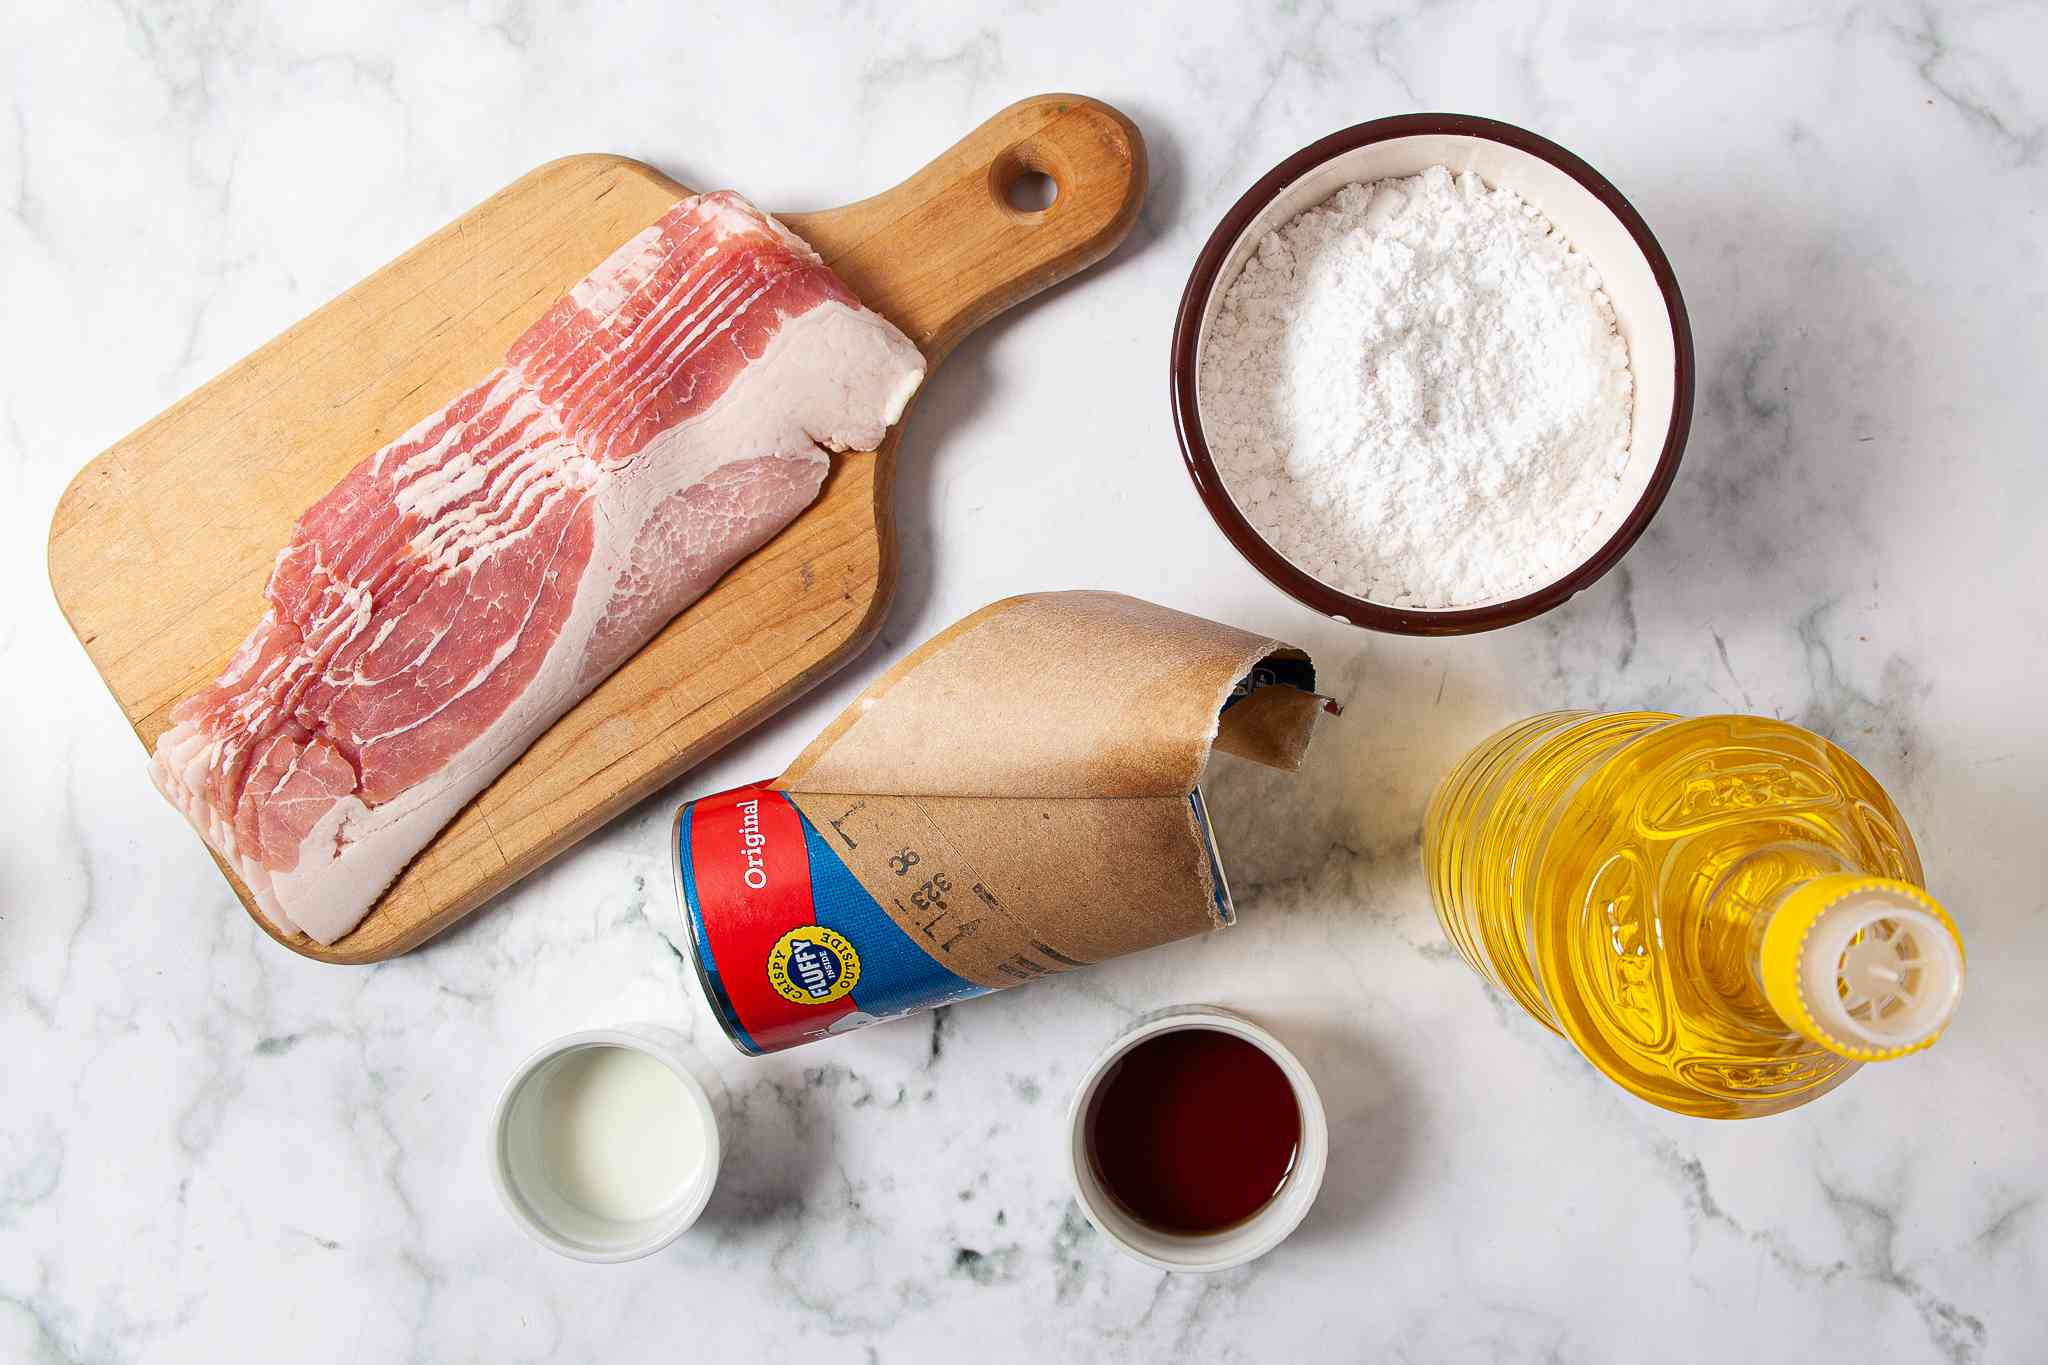 Maple Bacon Donut ingredients